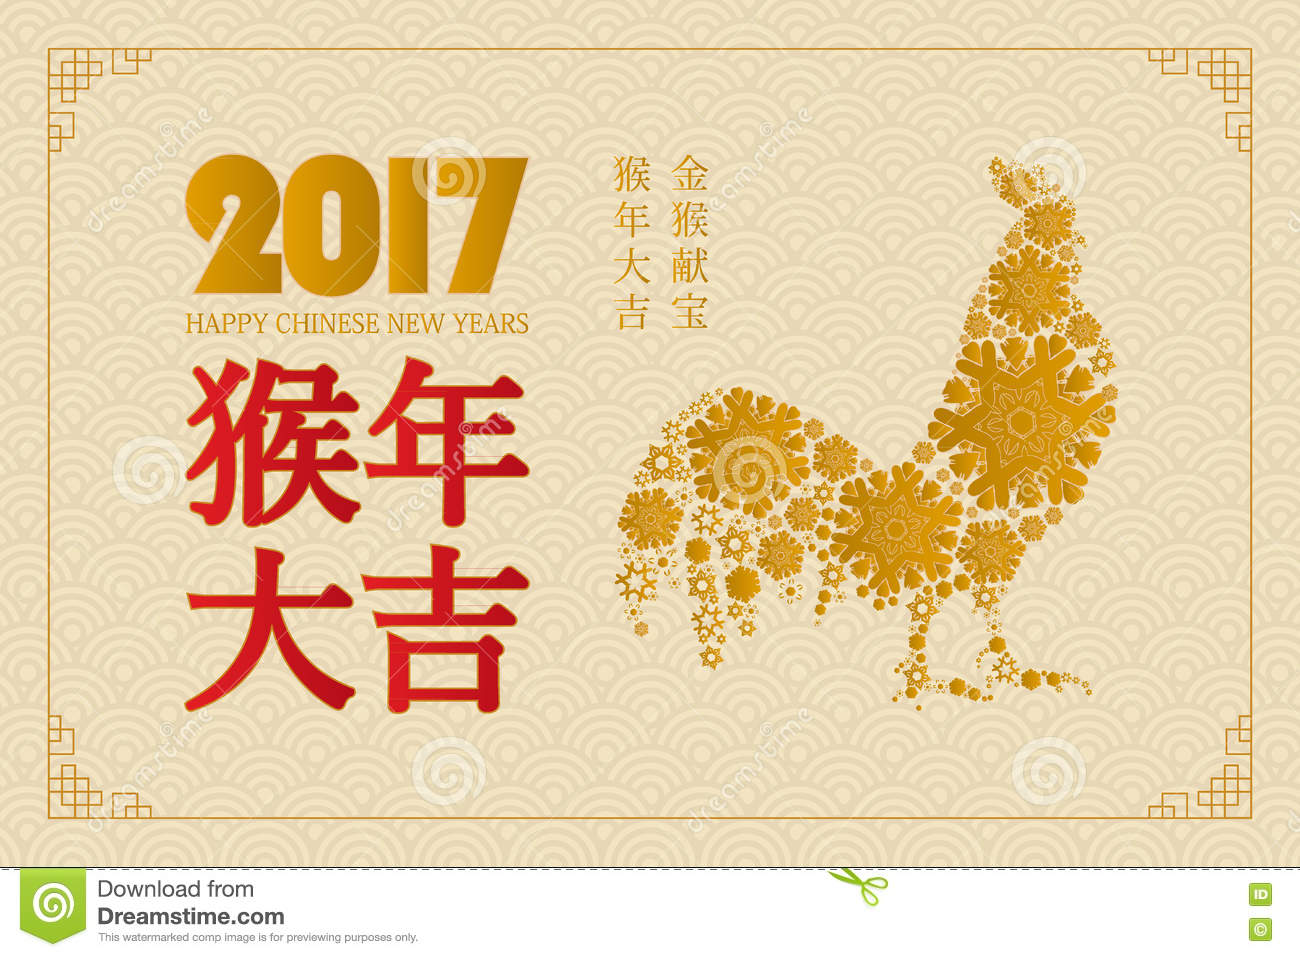 New year 2017 greeting pictures year of rooster happy chinese new year - 2017 Chinese Design Greeting Lunar New Rooster Year